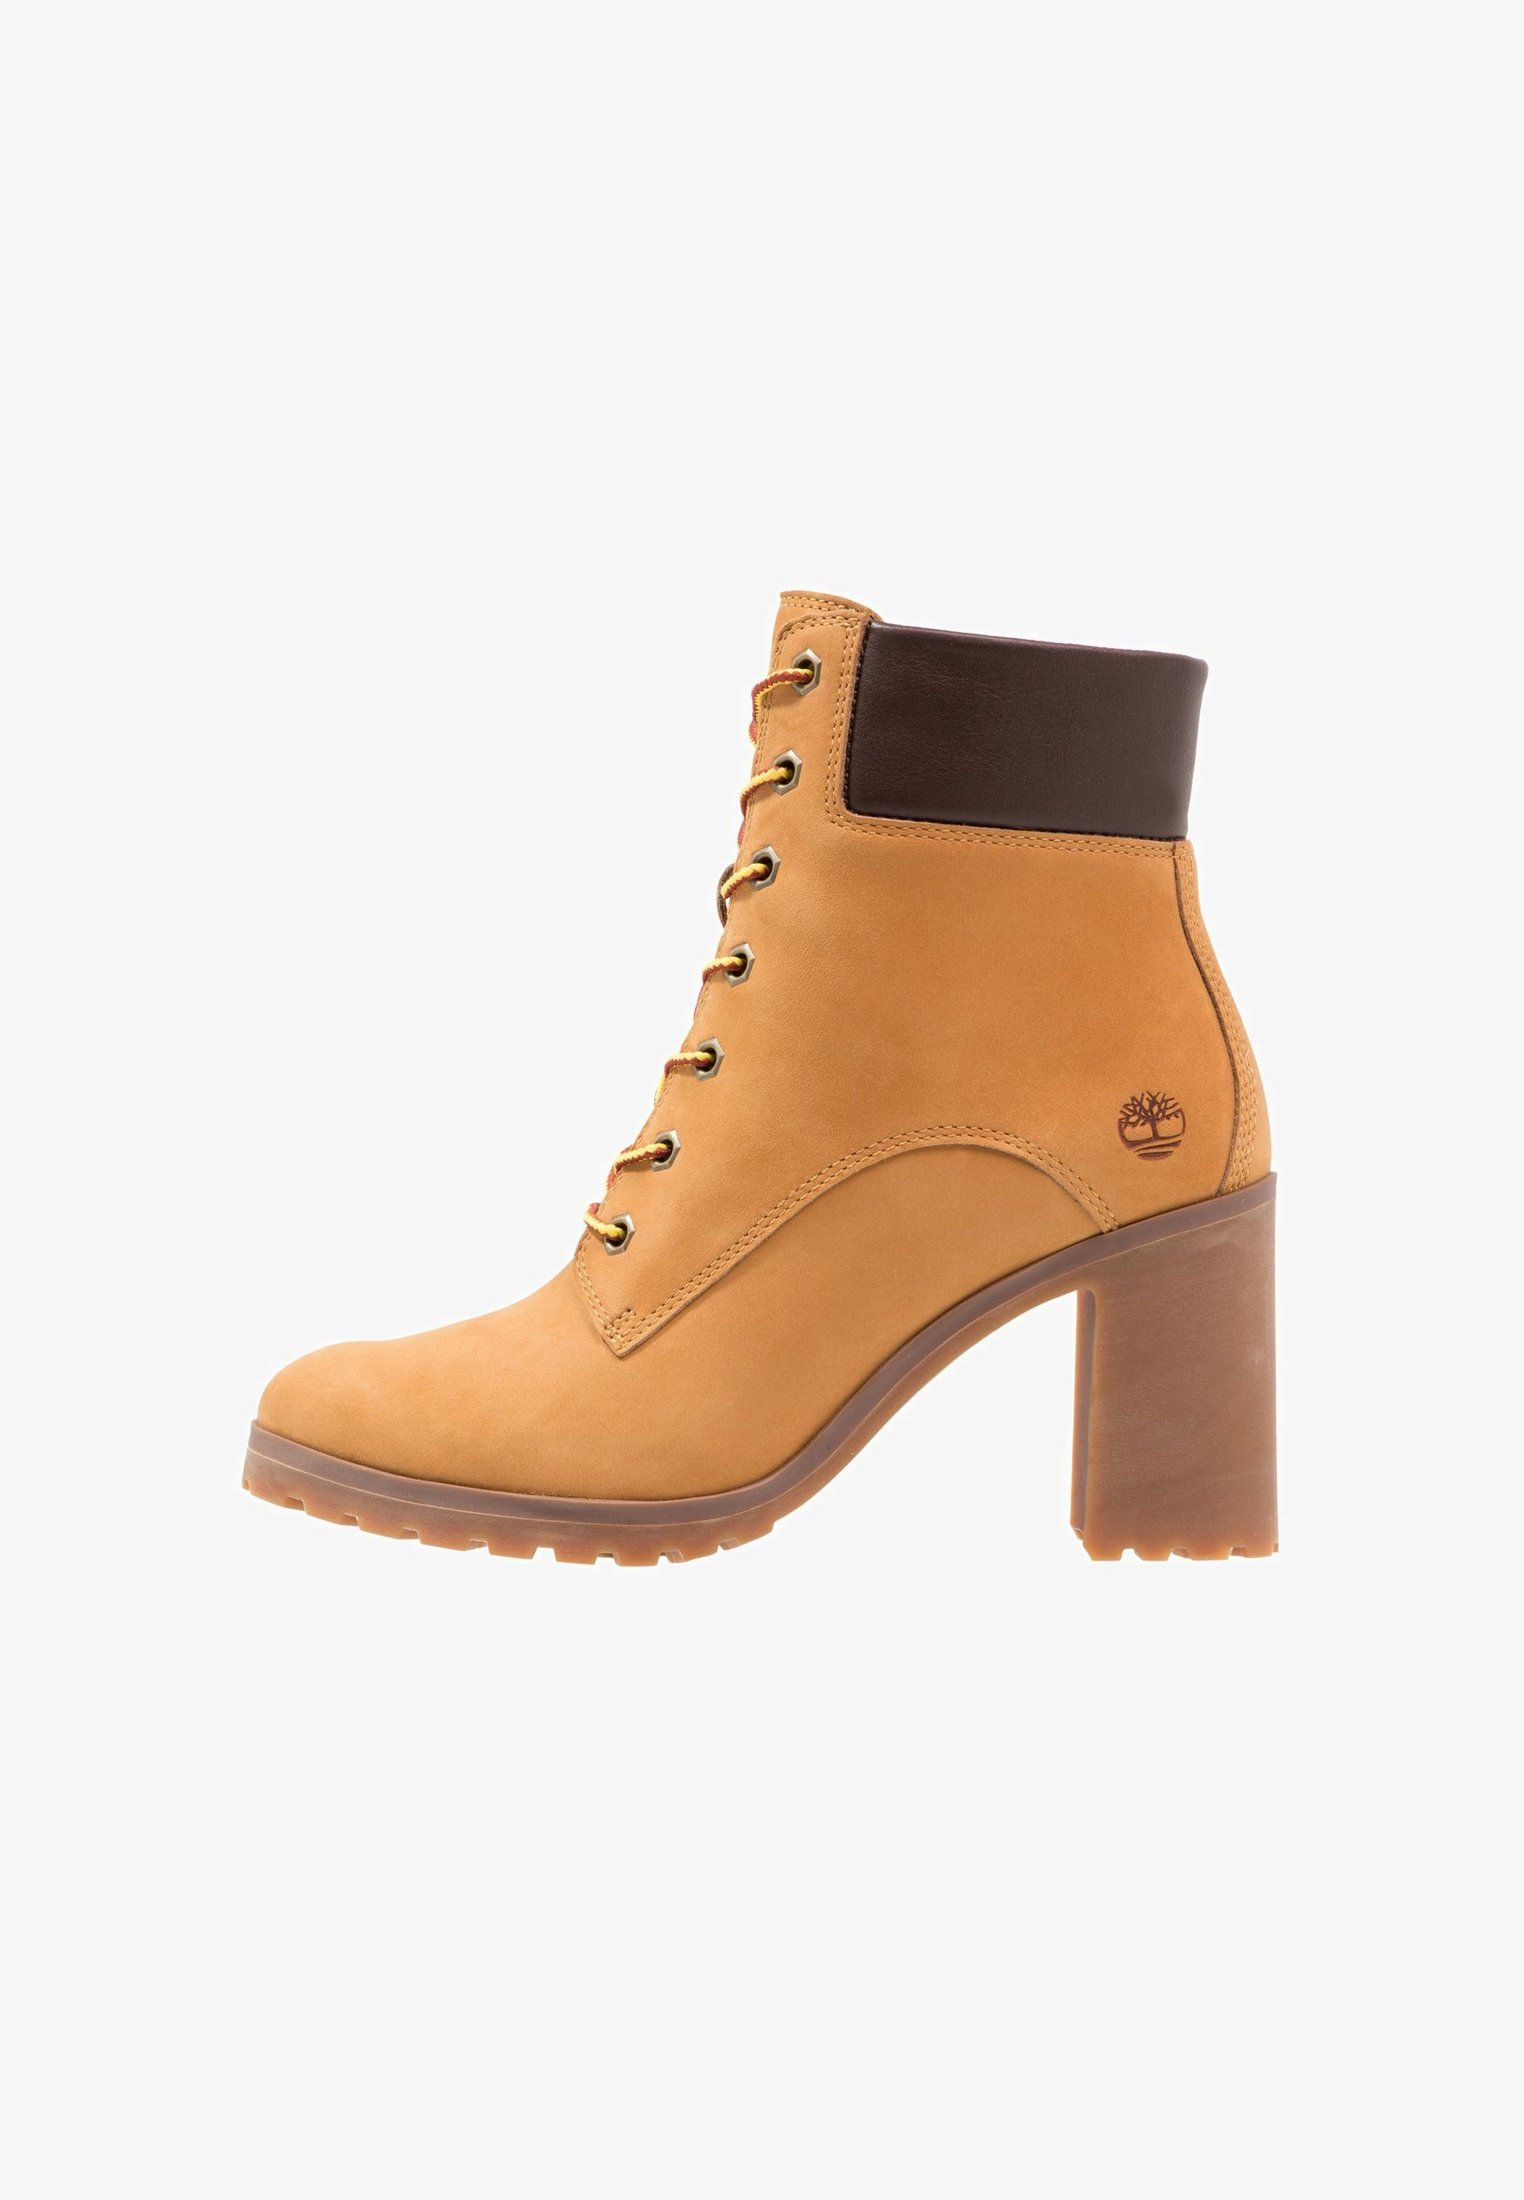 ALLINGTON 6IN LACE UP Lace up ankle boots wheat in 2019